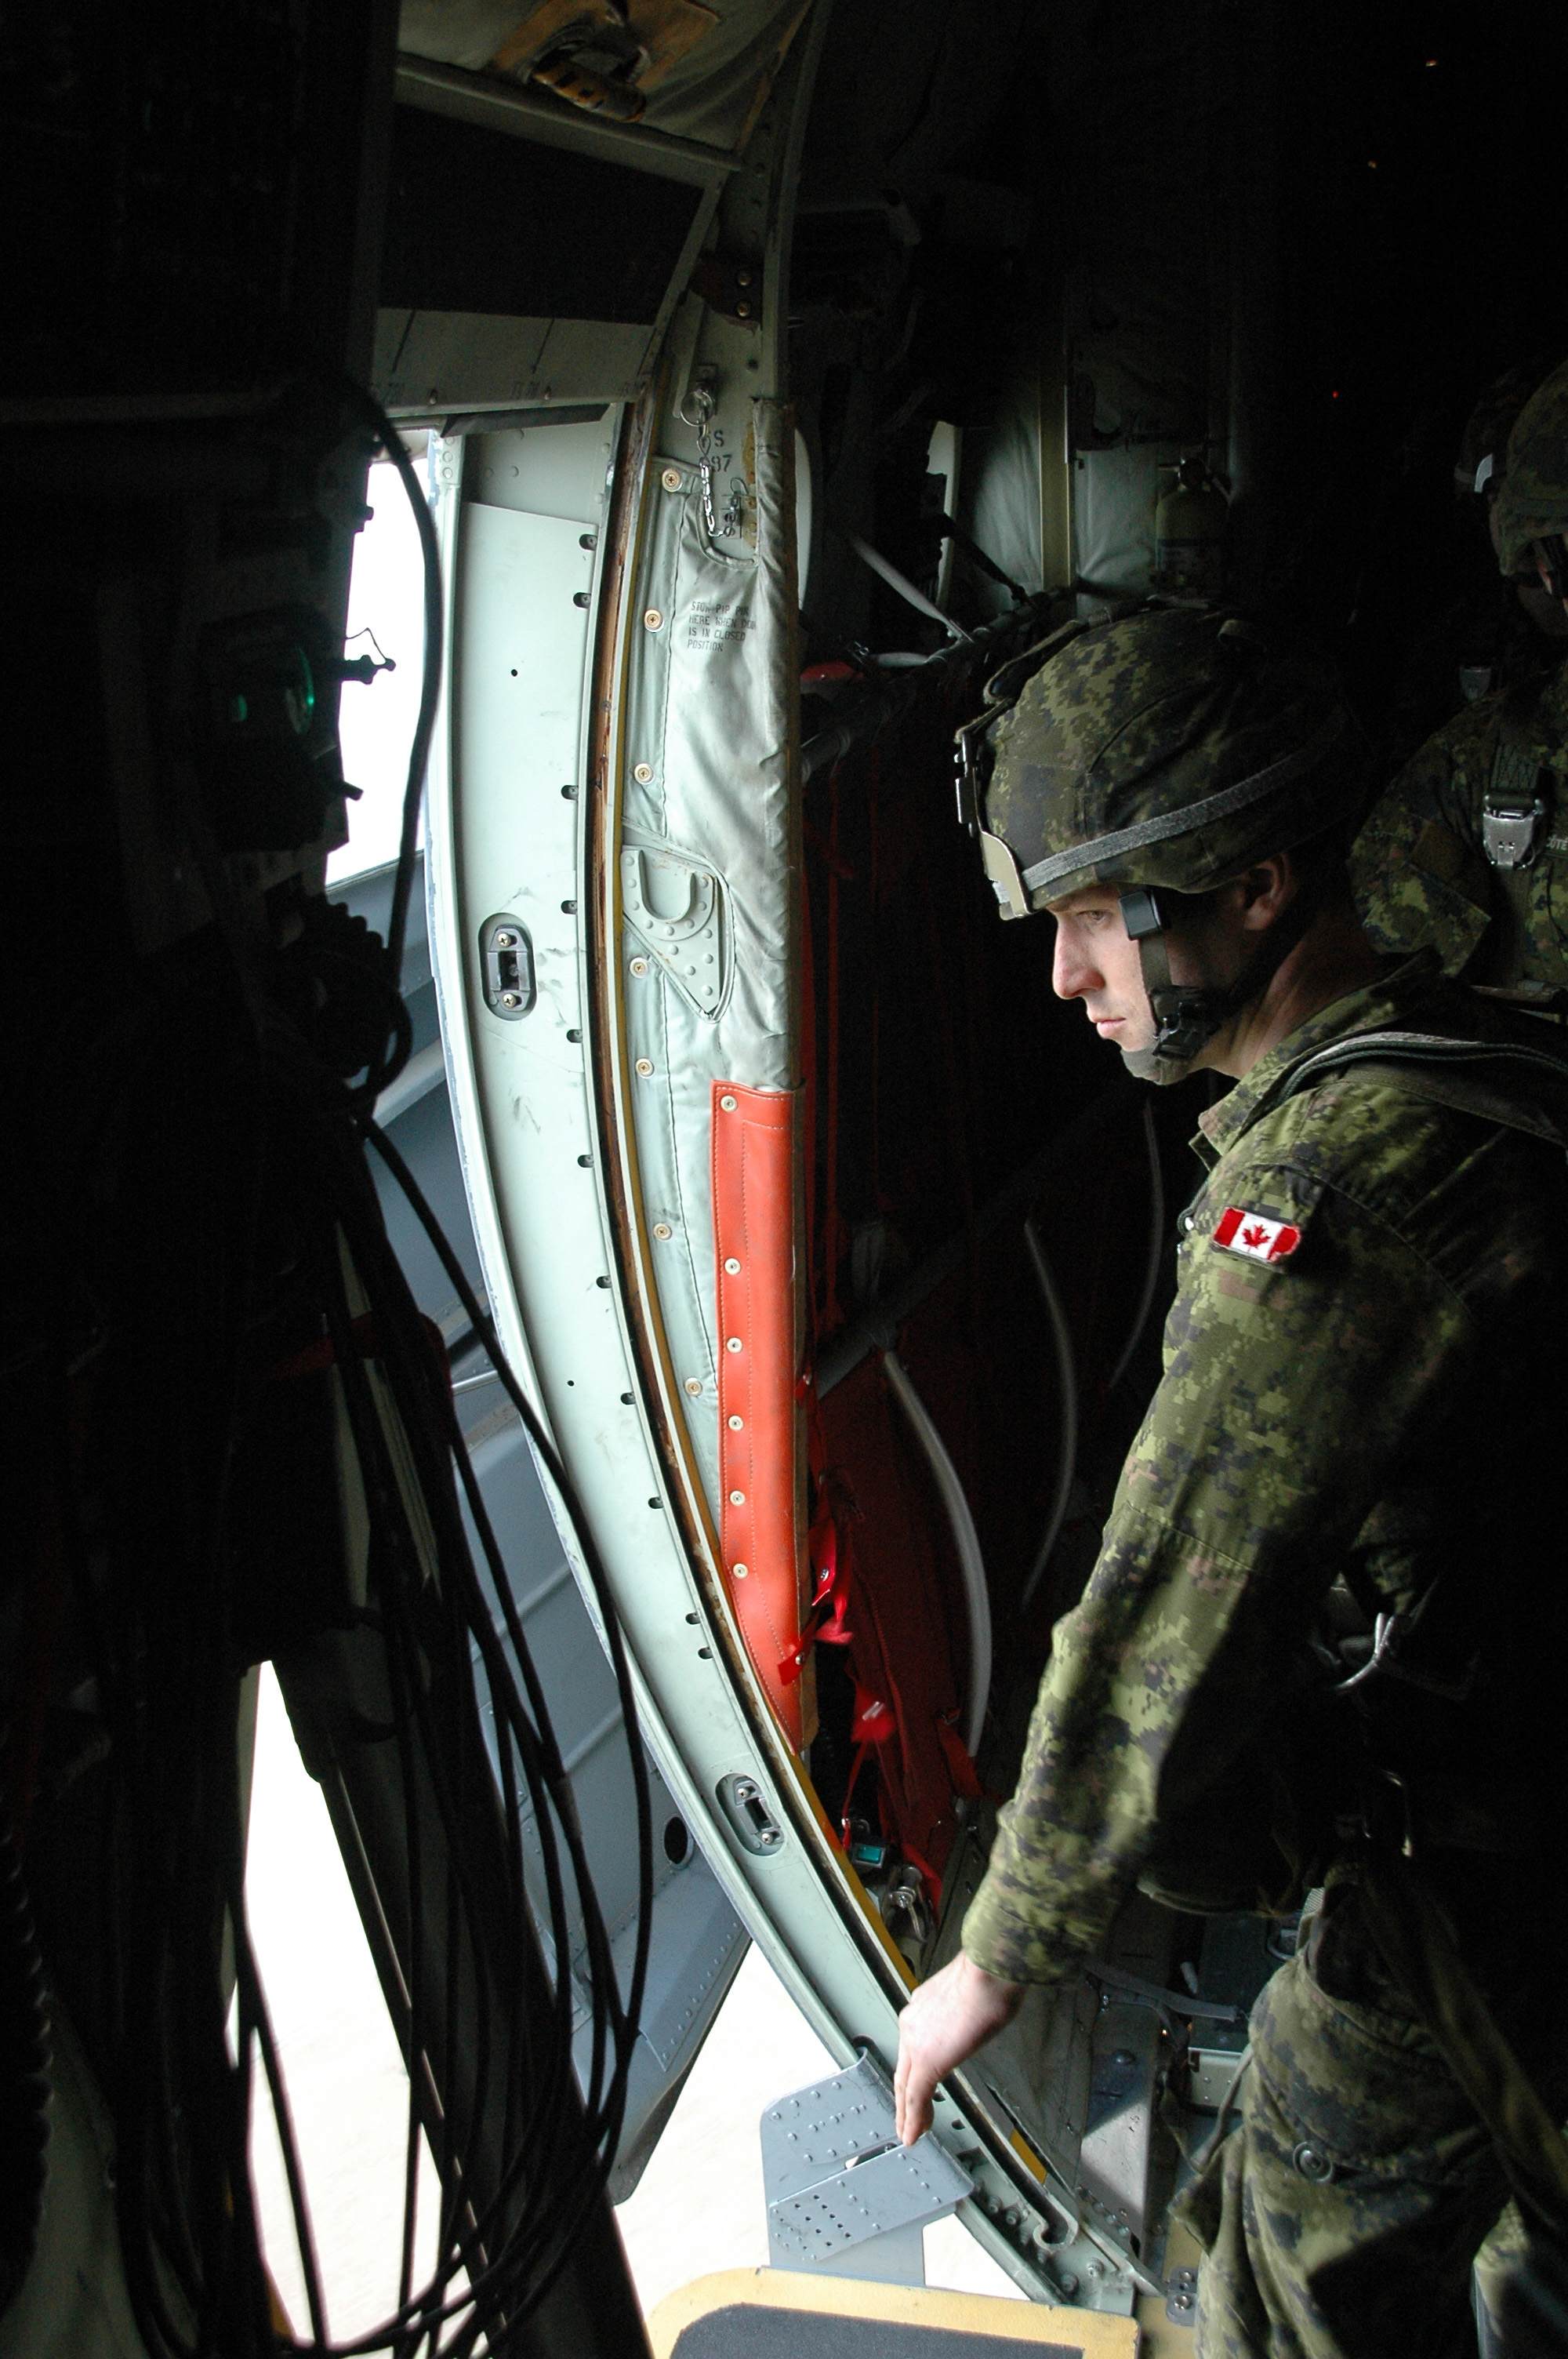 Members of the Canadian Army prepare to jump during a mass NATO paradrop at Santarém, Portugal on October 28, 2015 during Exercise TRIDENT JUNCTURE 15. Photo by: Sold Ferraz, Public Affairs Officer - Santa Margarida LOPSCON.